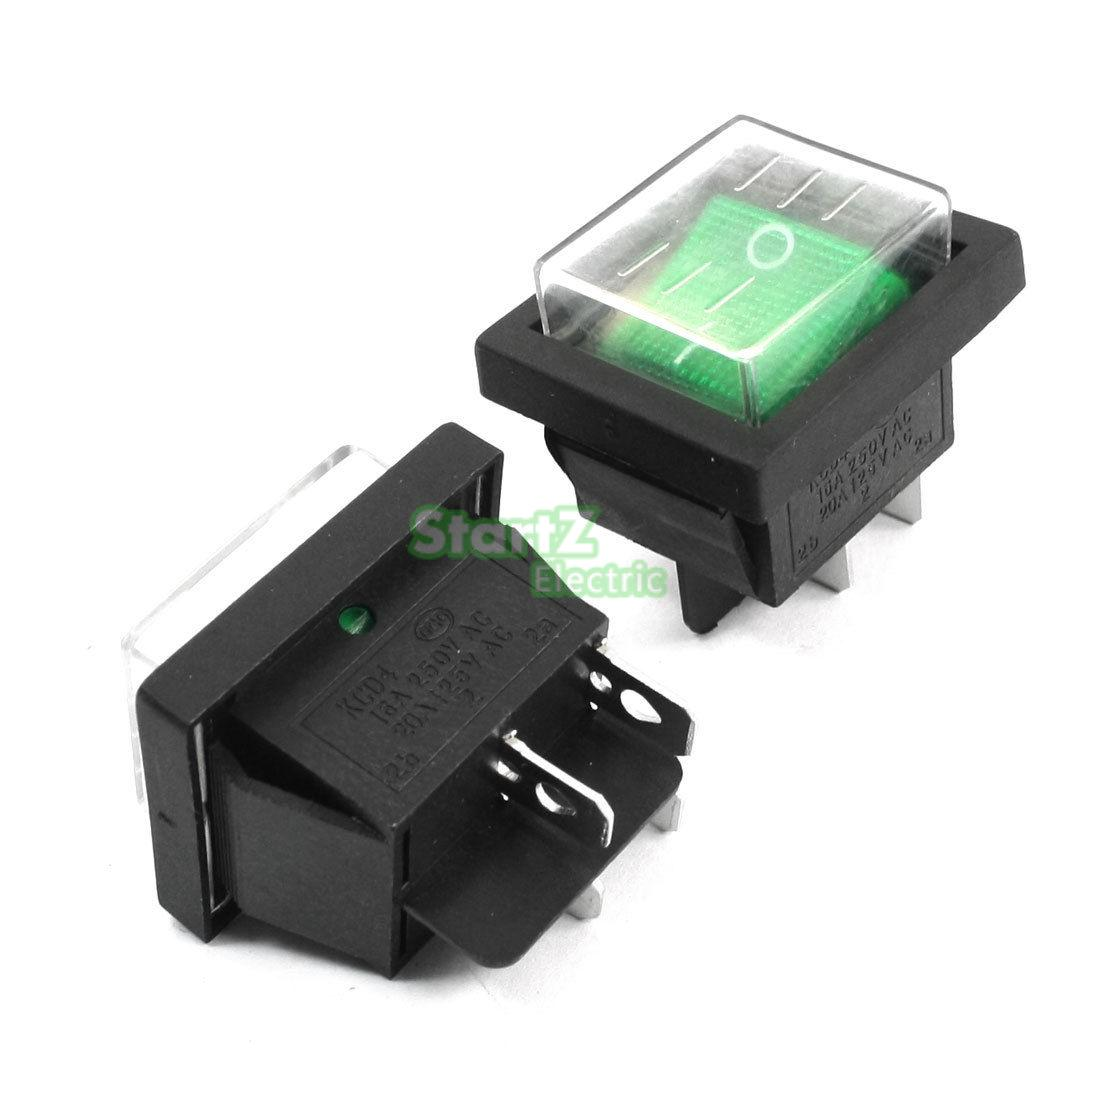 5pcs DPST 2 Position 4 Pin Green Button Waterproof Boat Rocker Switches 250vac 15a 125vac 20a 4 pin 2 position dpst on off snap in rocker switch kcd2 201n